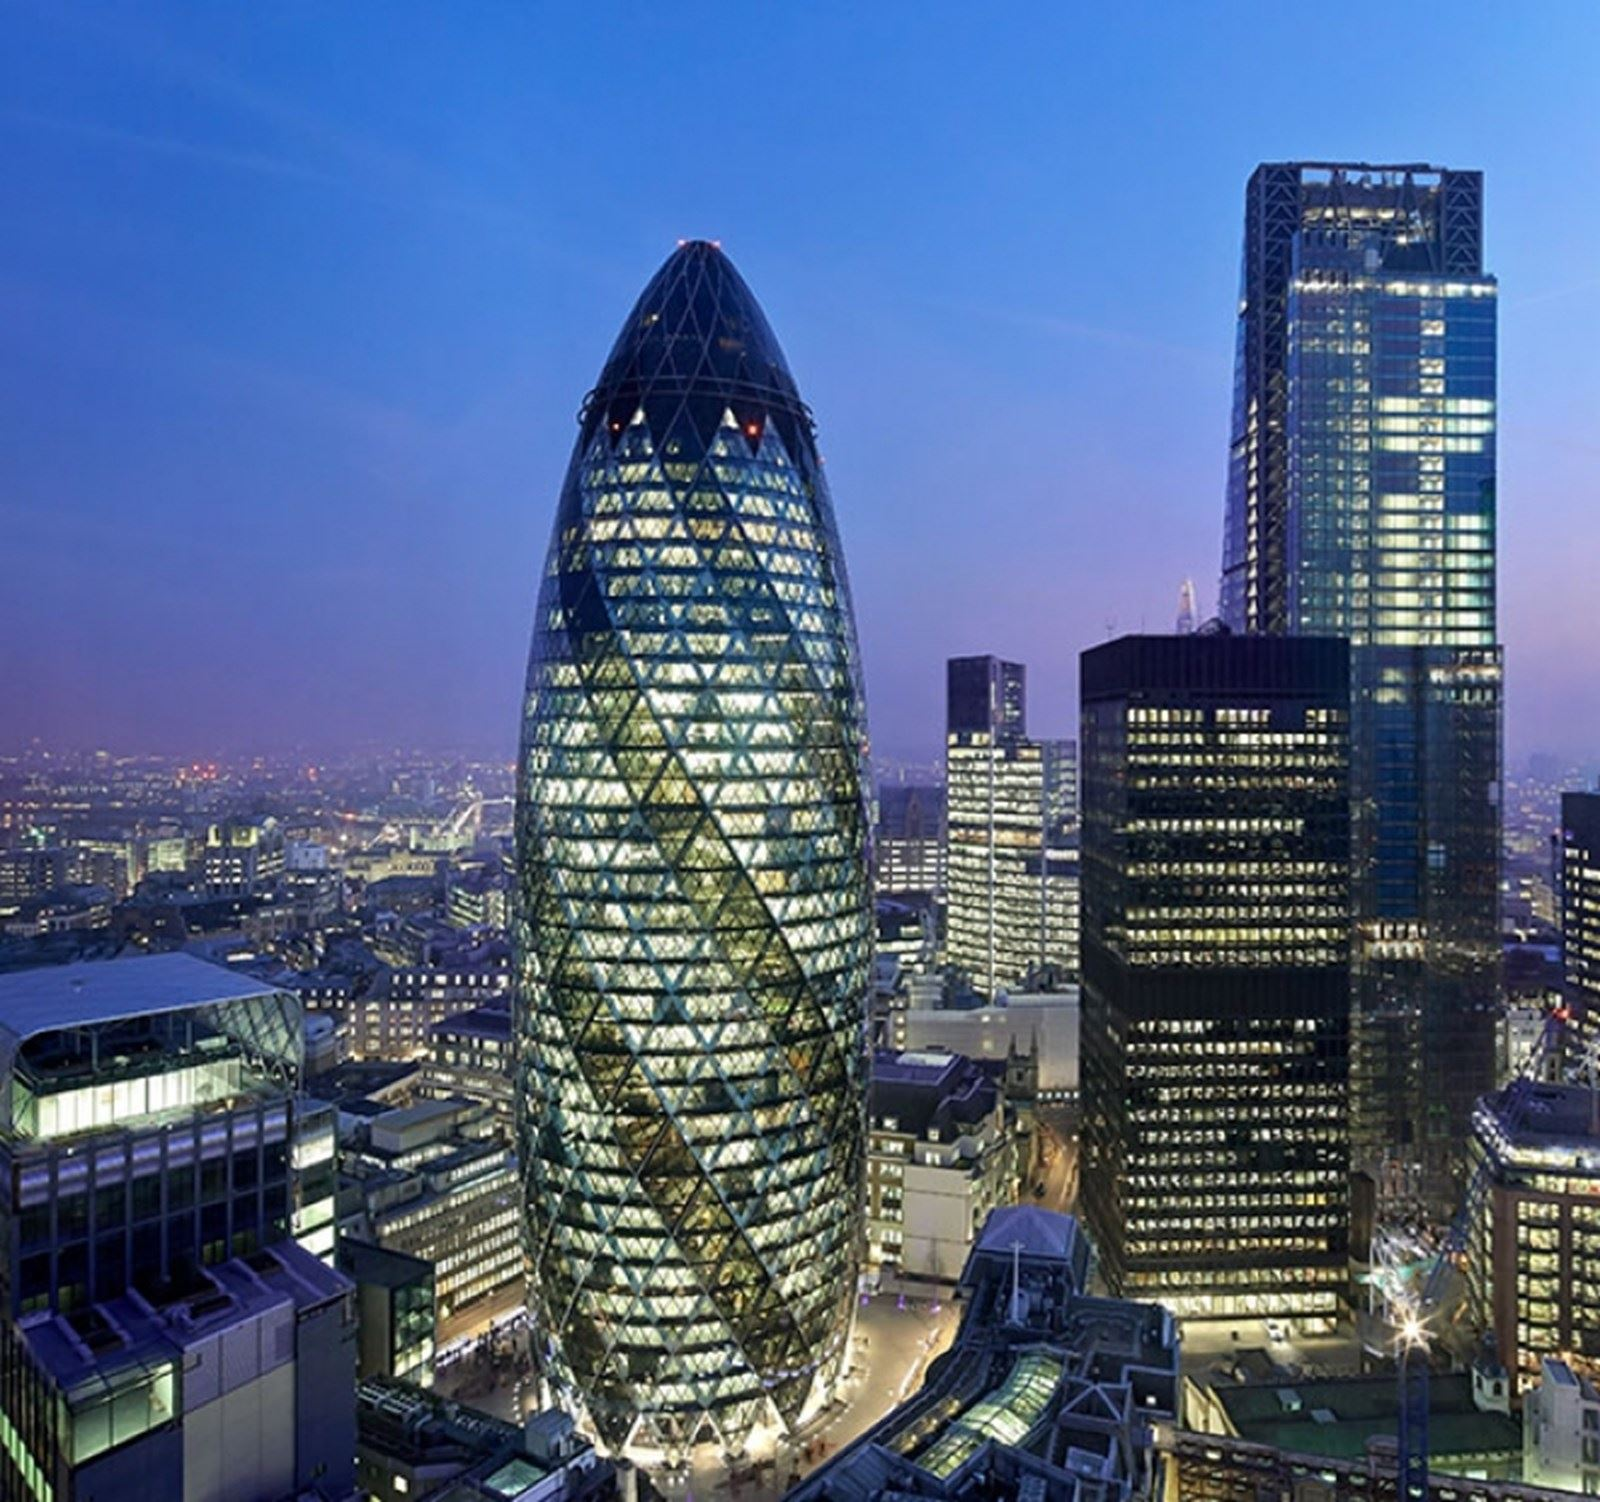 The gherkin photo